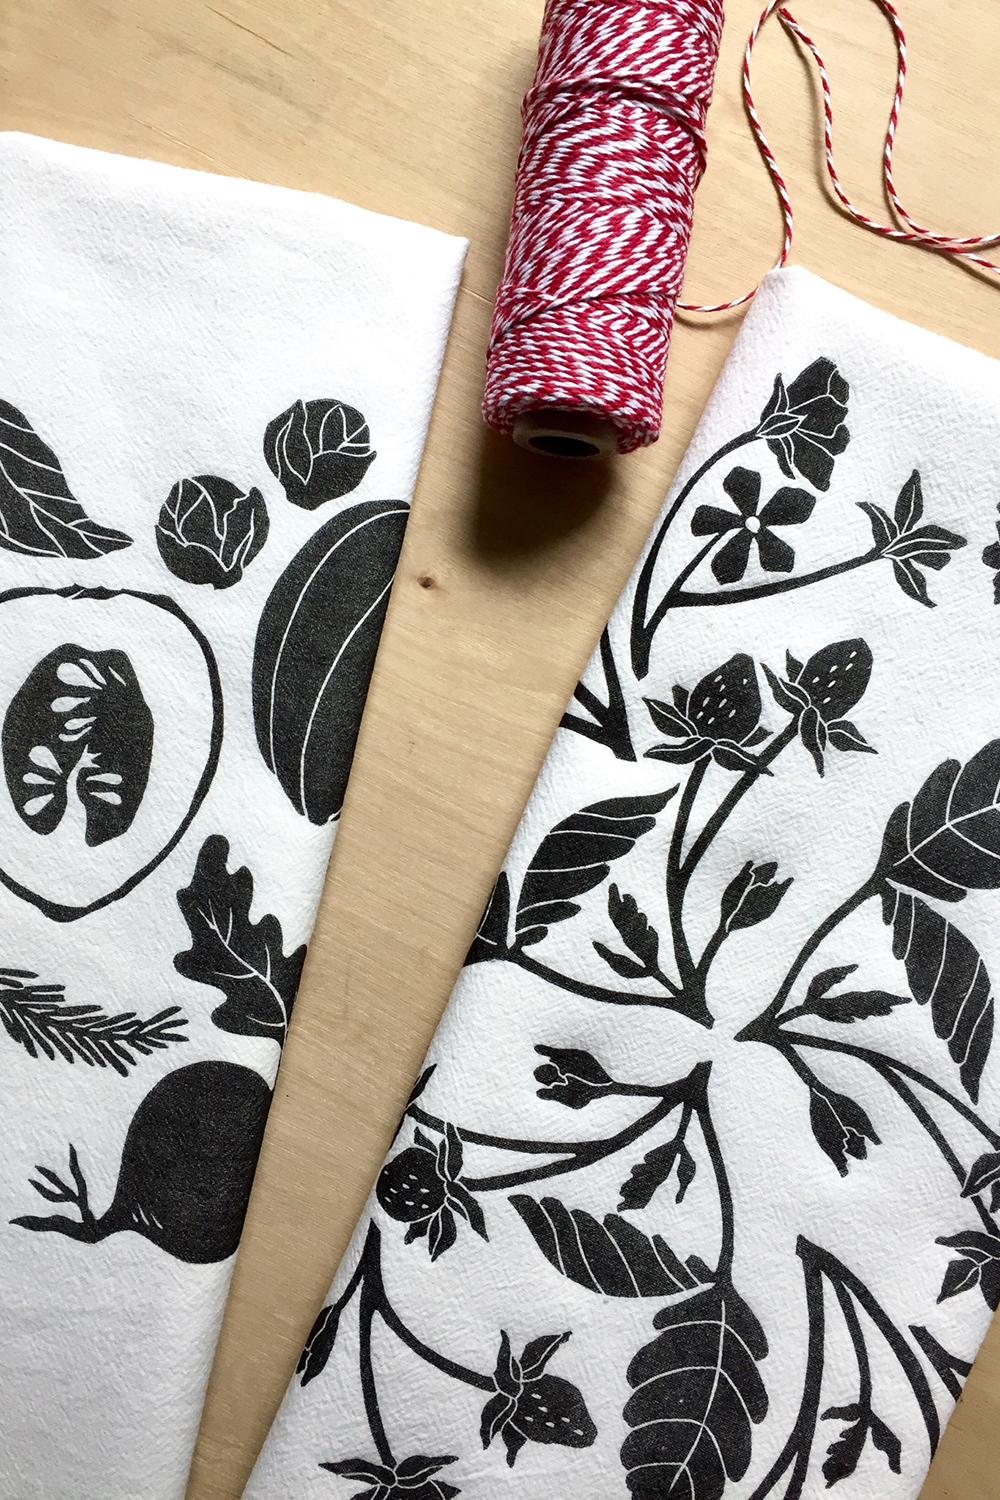 Block printed tea towels in botanical designs